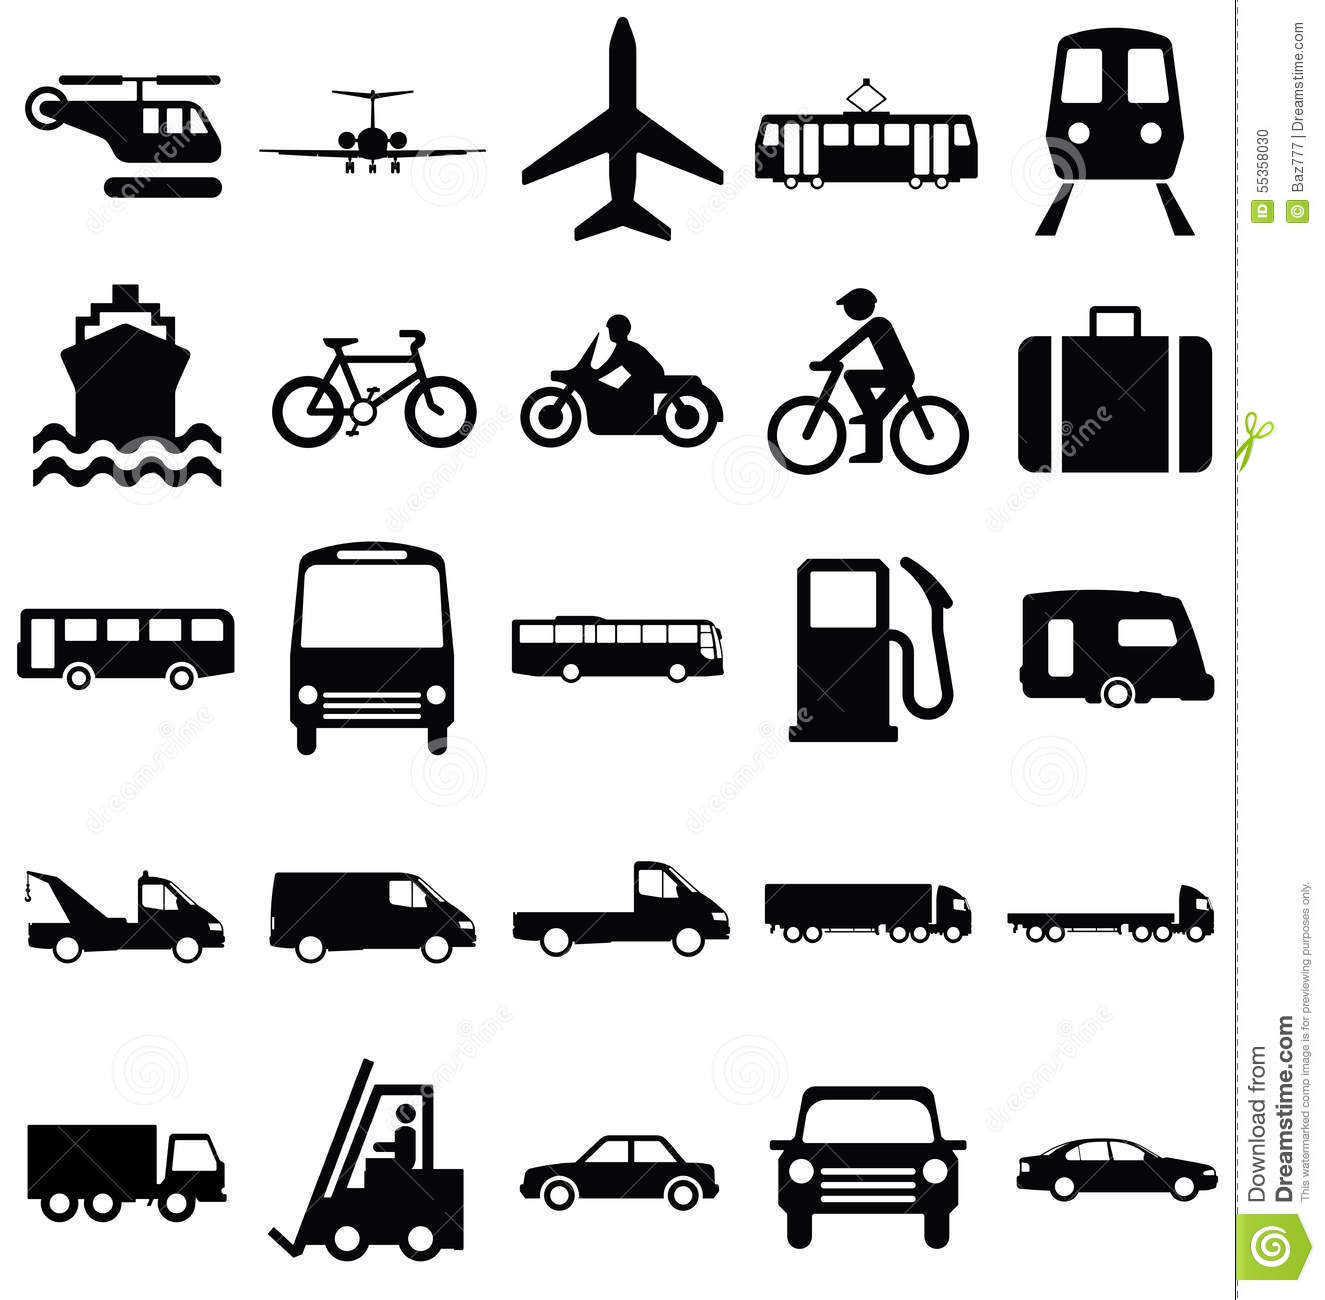 Transport Related Graphics Stock Vector - Image: 55358030